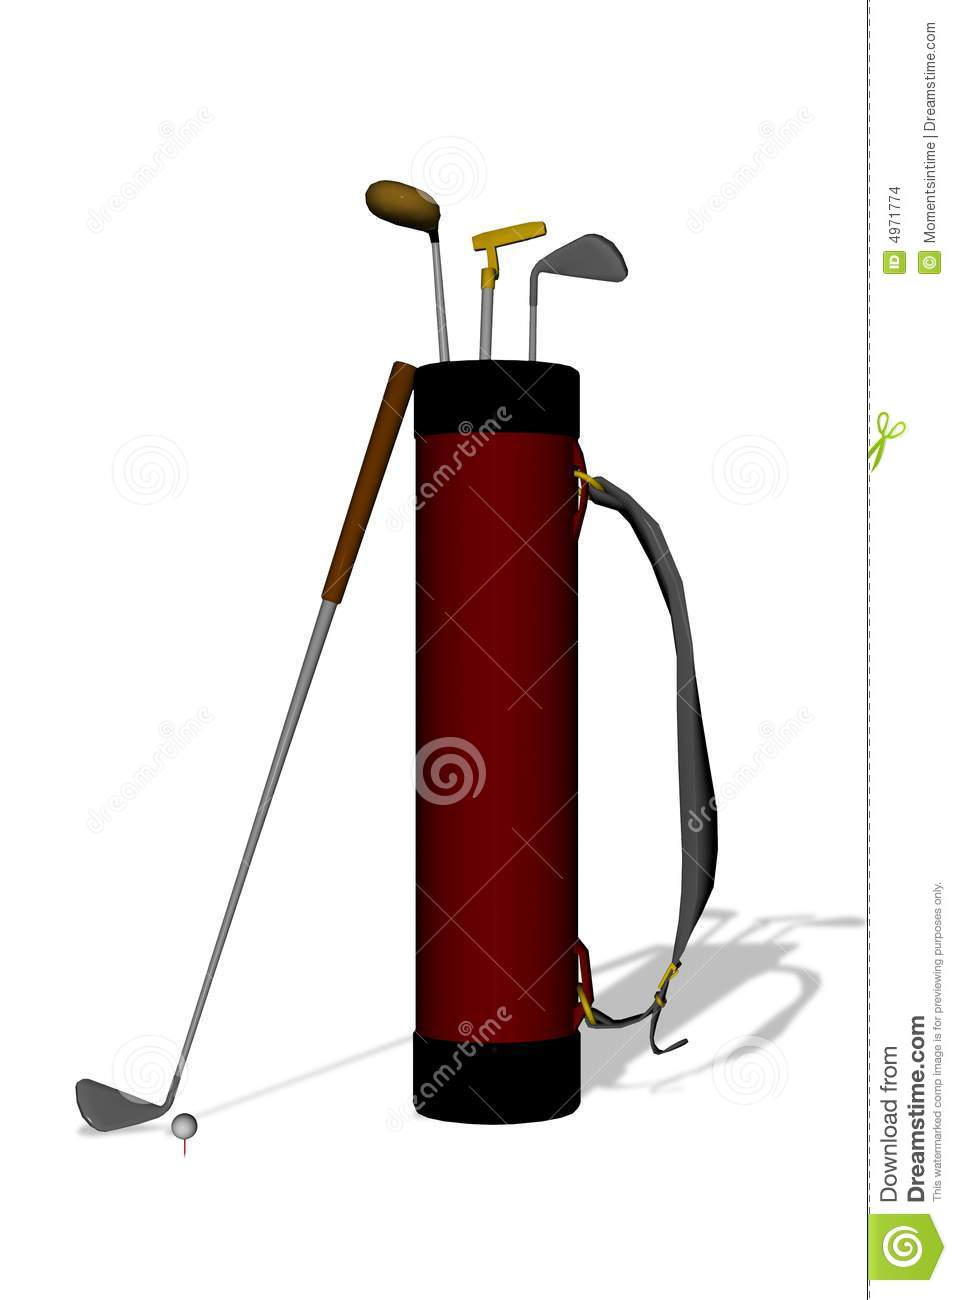 Golf Clubs over White